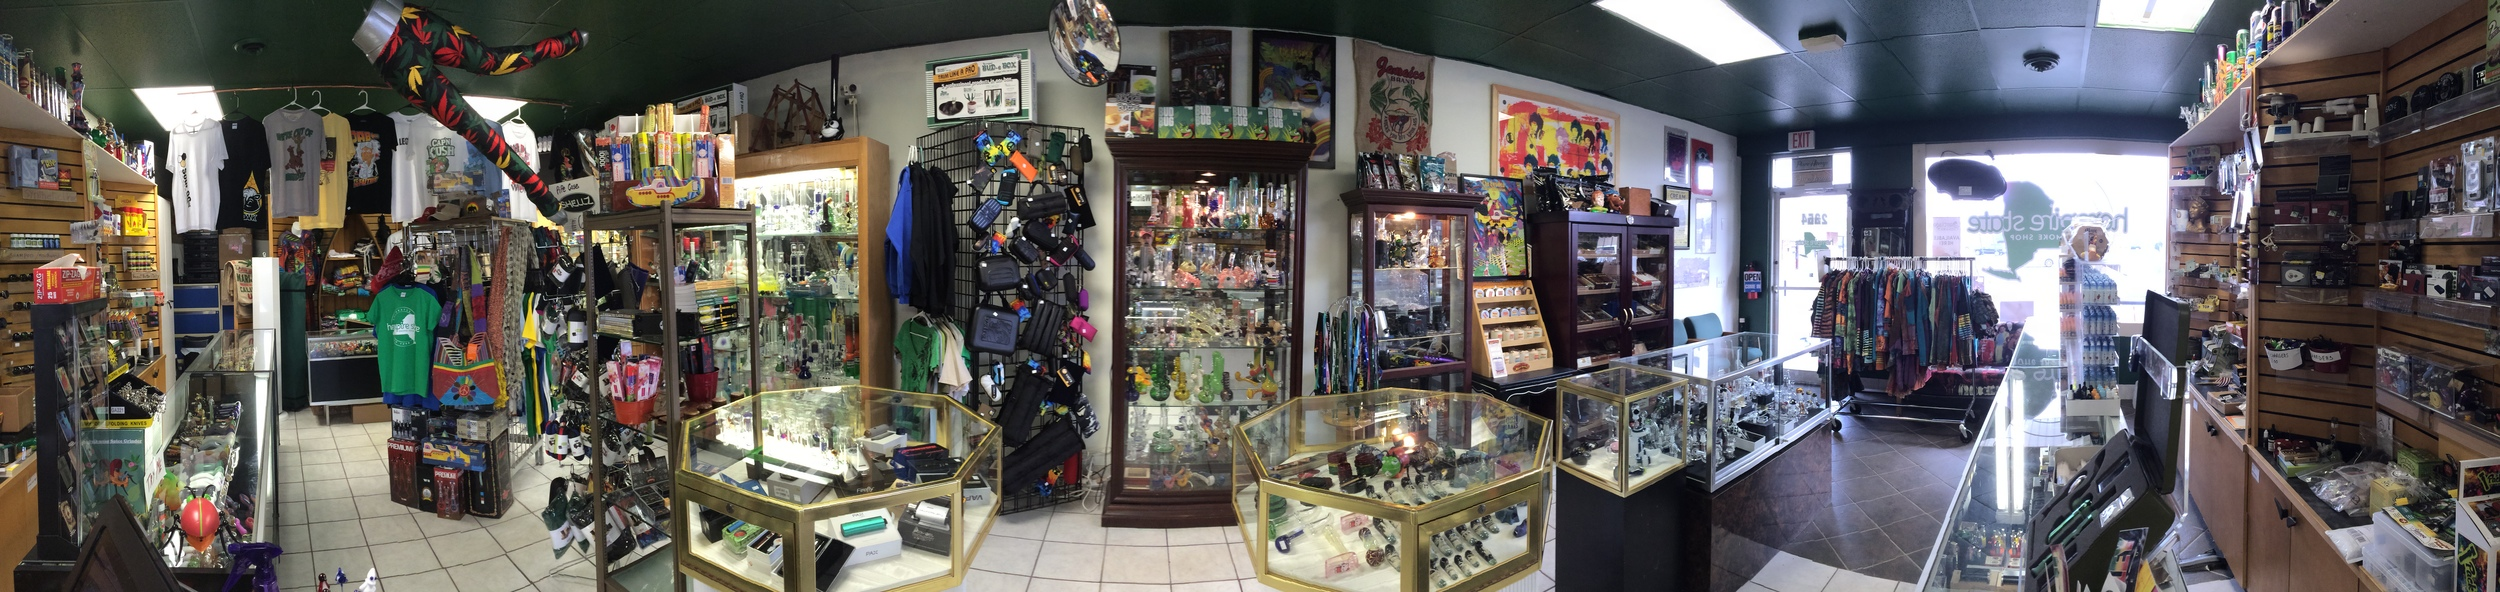 Hempire Smoke shop has both tobacco accessories and vaping accessories